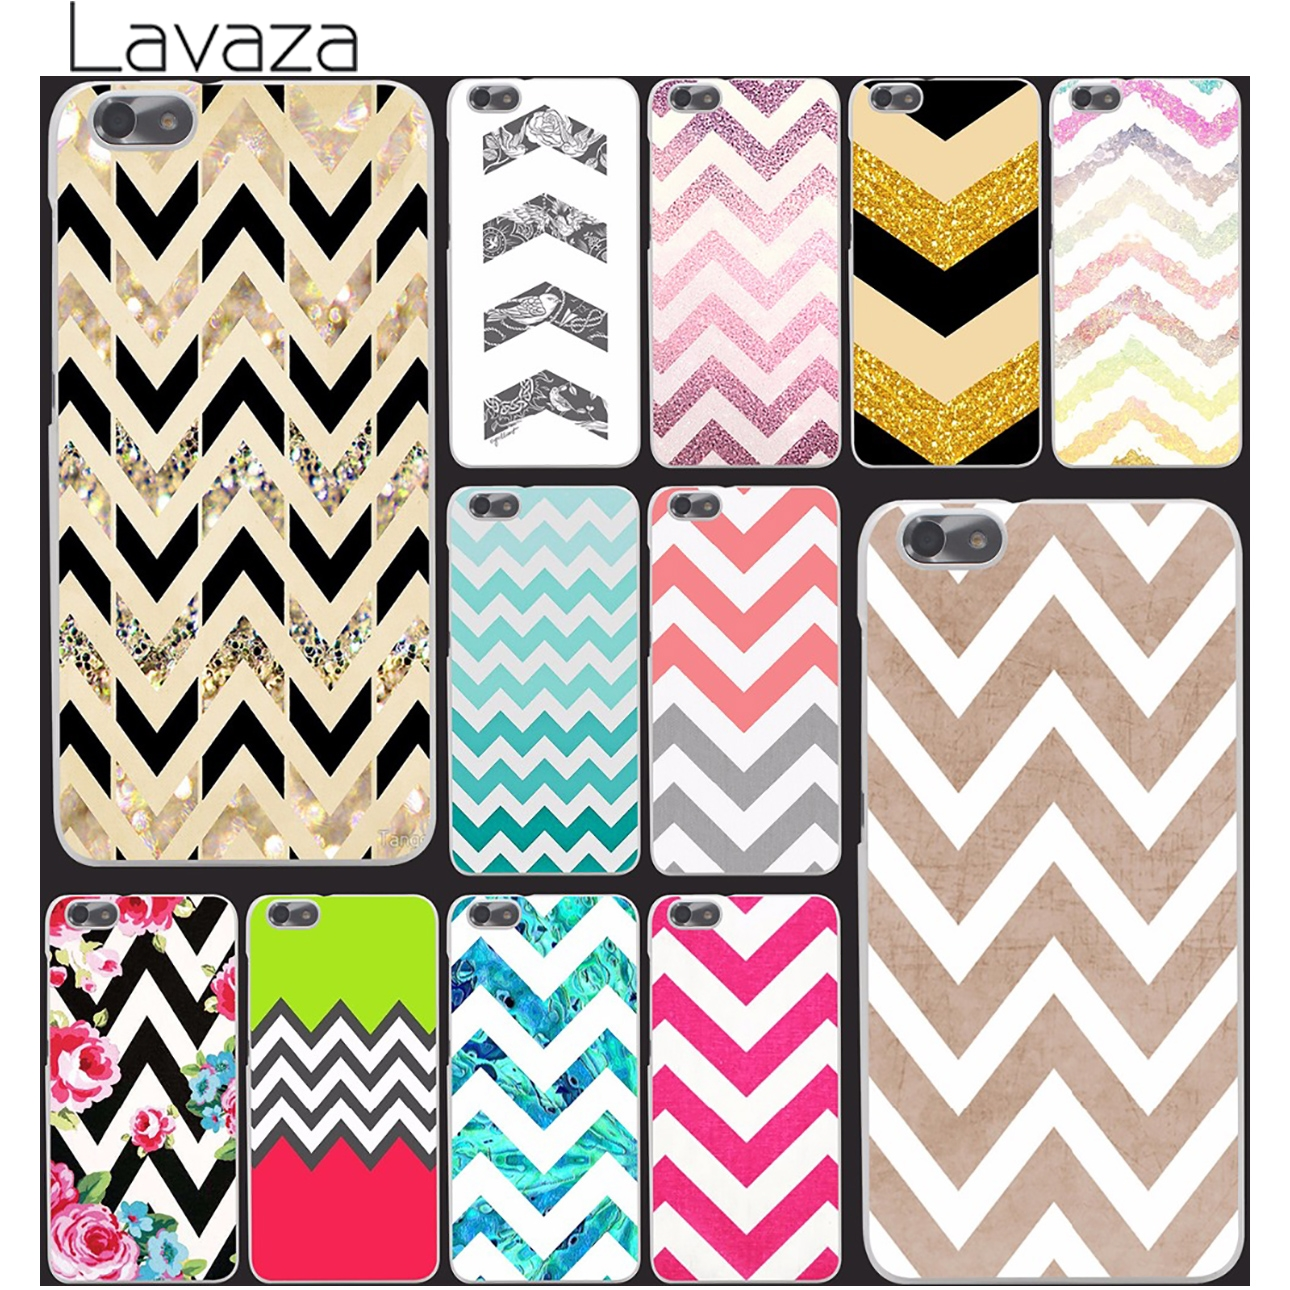 stripe gold glitter chevron wave Wavy pattern Hard Case Cover for Huawei P6 P7 P8 Lite P9 Lite Plus & Honor 6 7 4C 4X G7 print